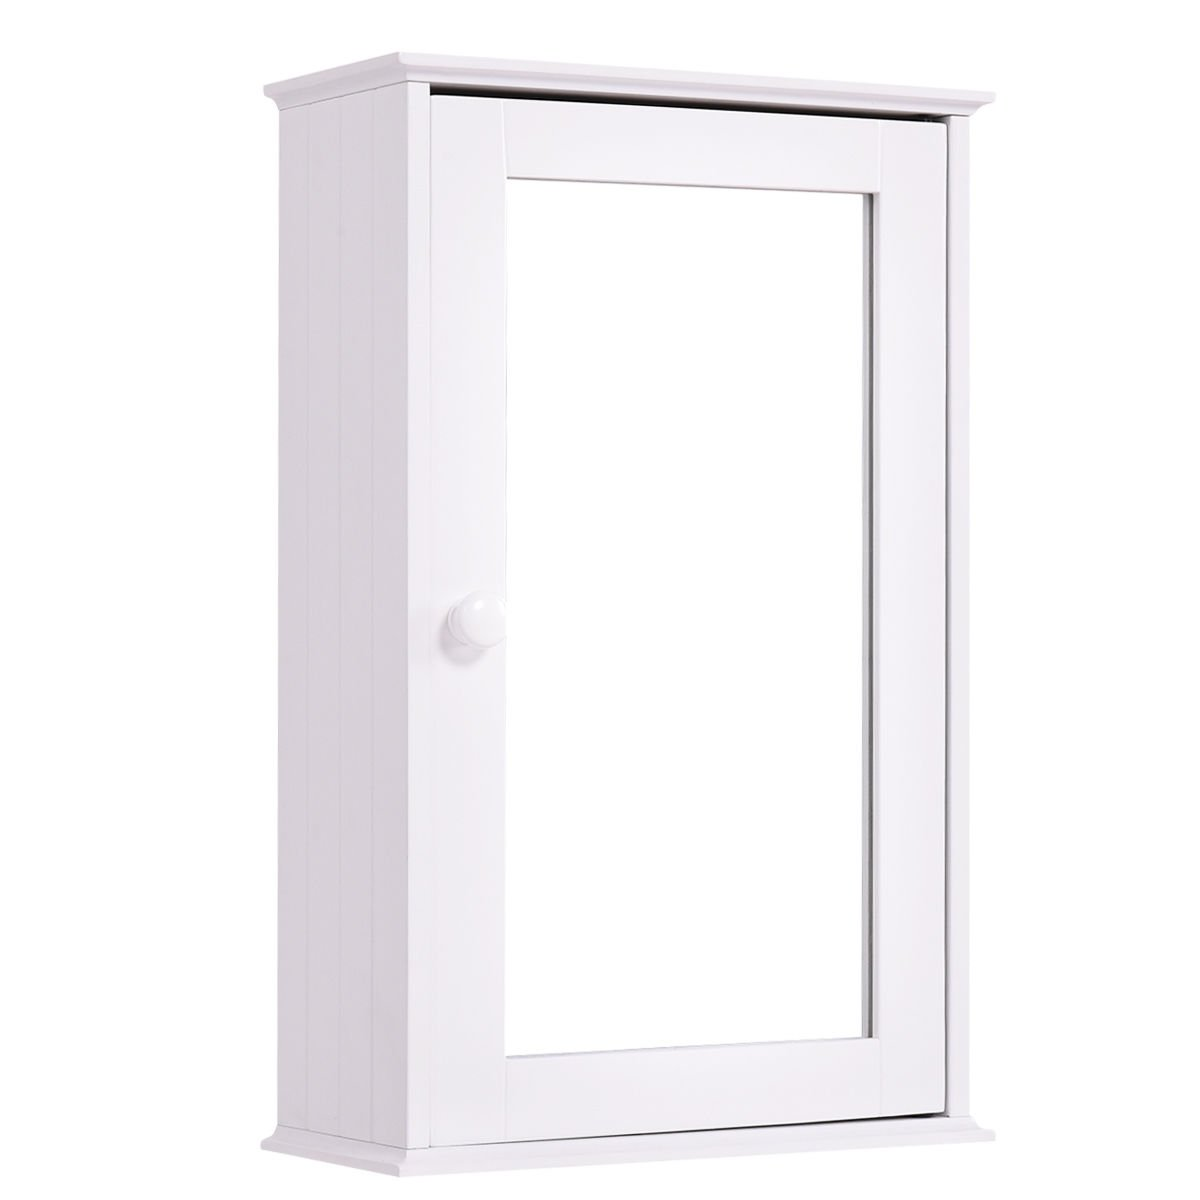 Picture of: Cheap Bathroom Storage Wall Cabinet Find Bathroom Storage Wall Cabinet Deals On Line At Alibaba Com